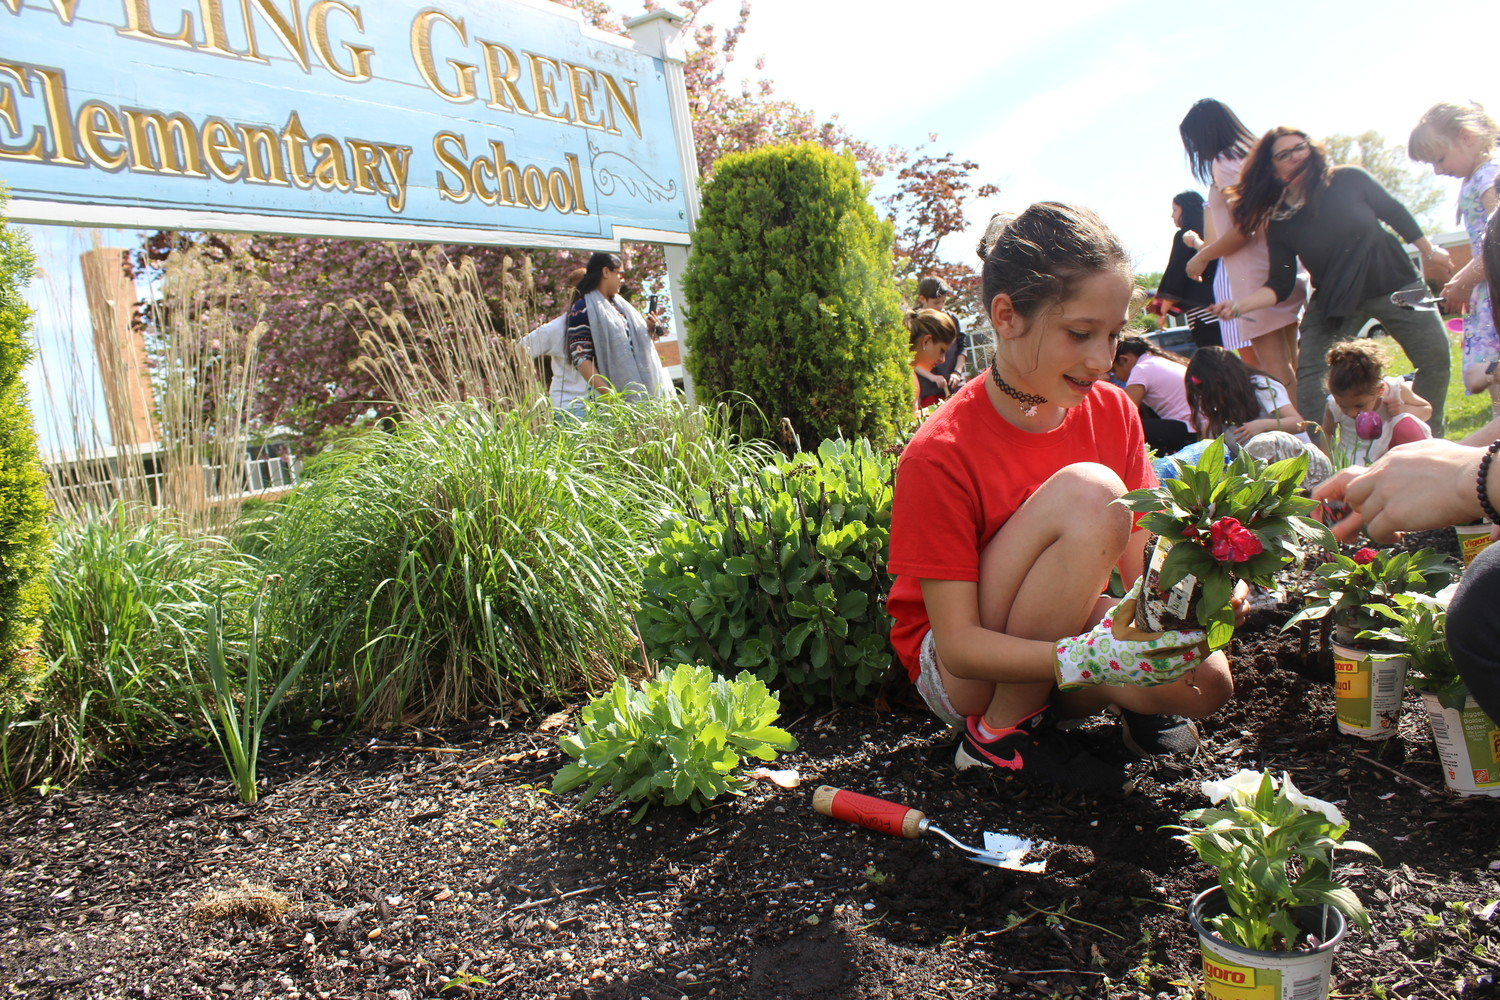 Erin Frank, a fourth-grade student at Bowling Green Elementary School, planted flowers in front of the building's sign as part of a beautification effort by the Parent Teacher Association and Garden Club.